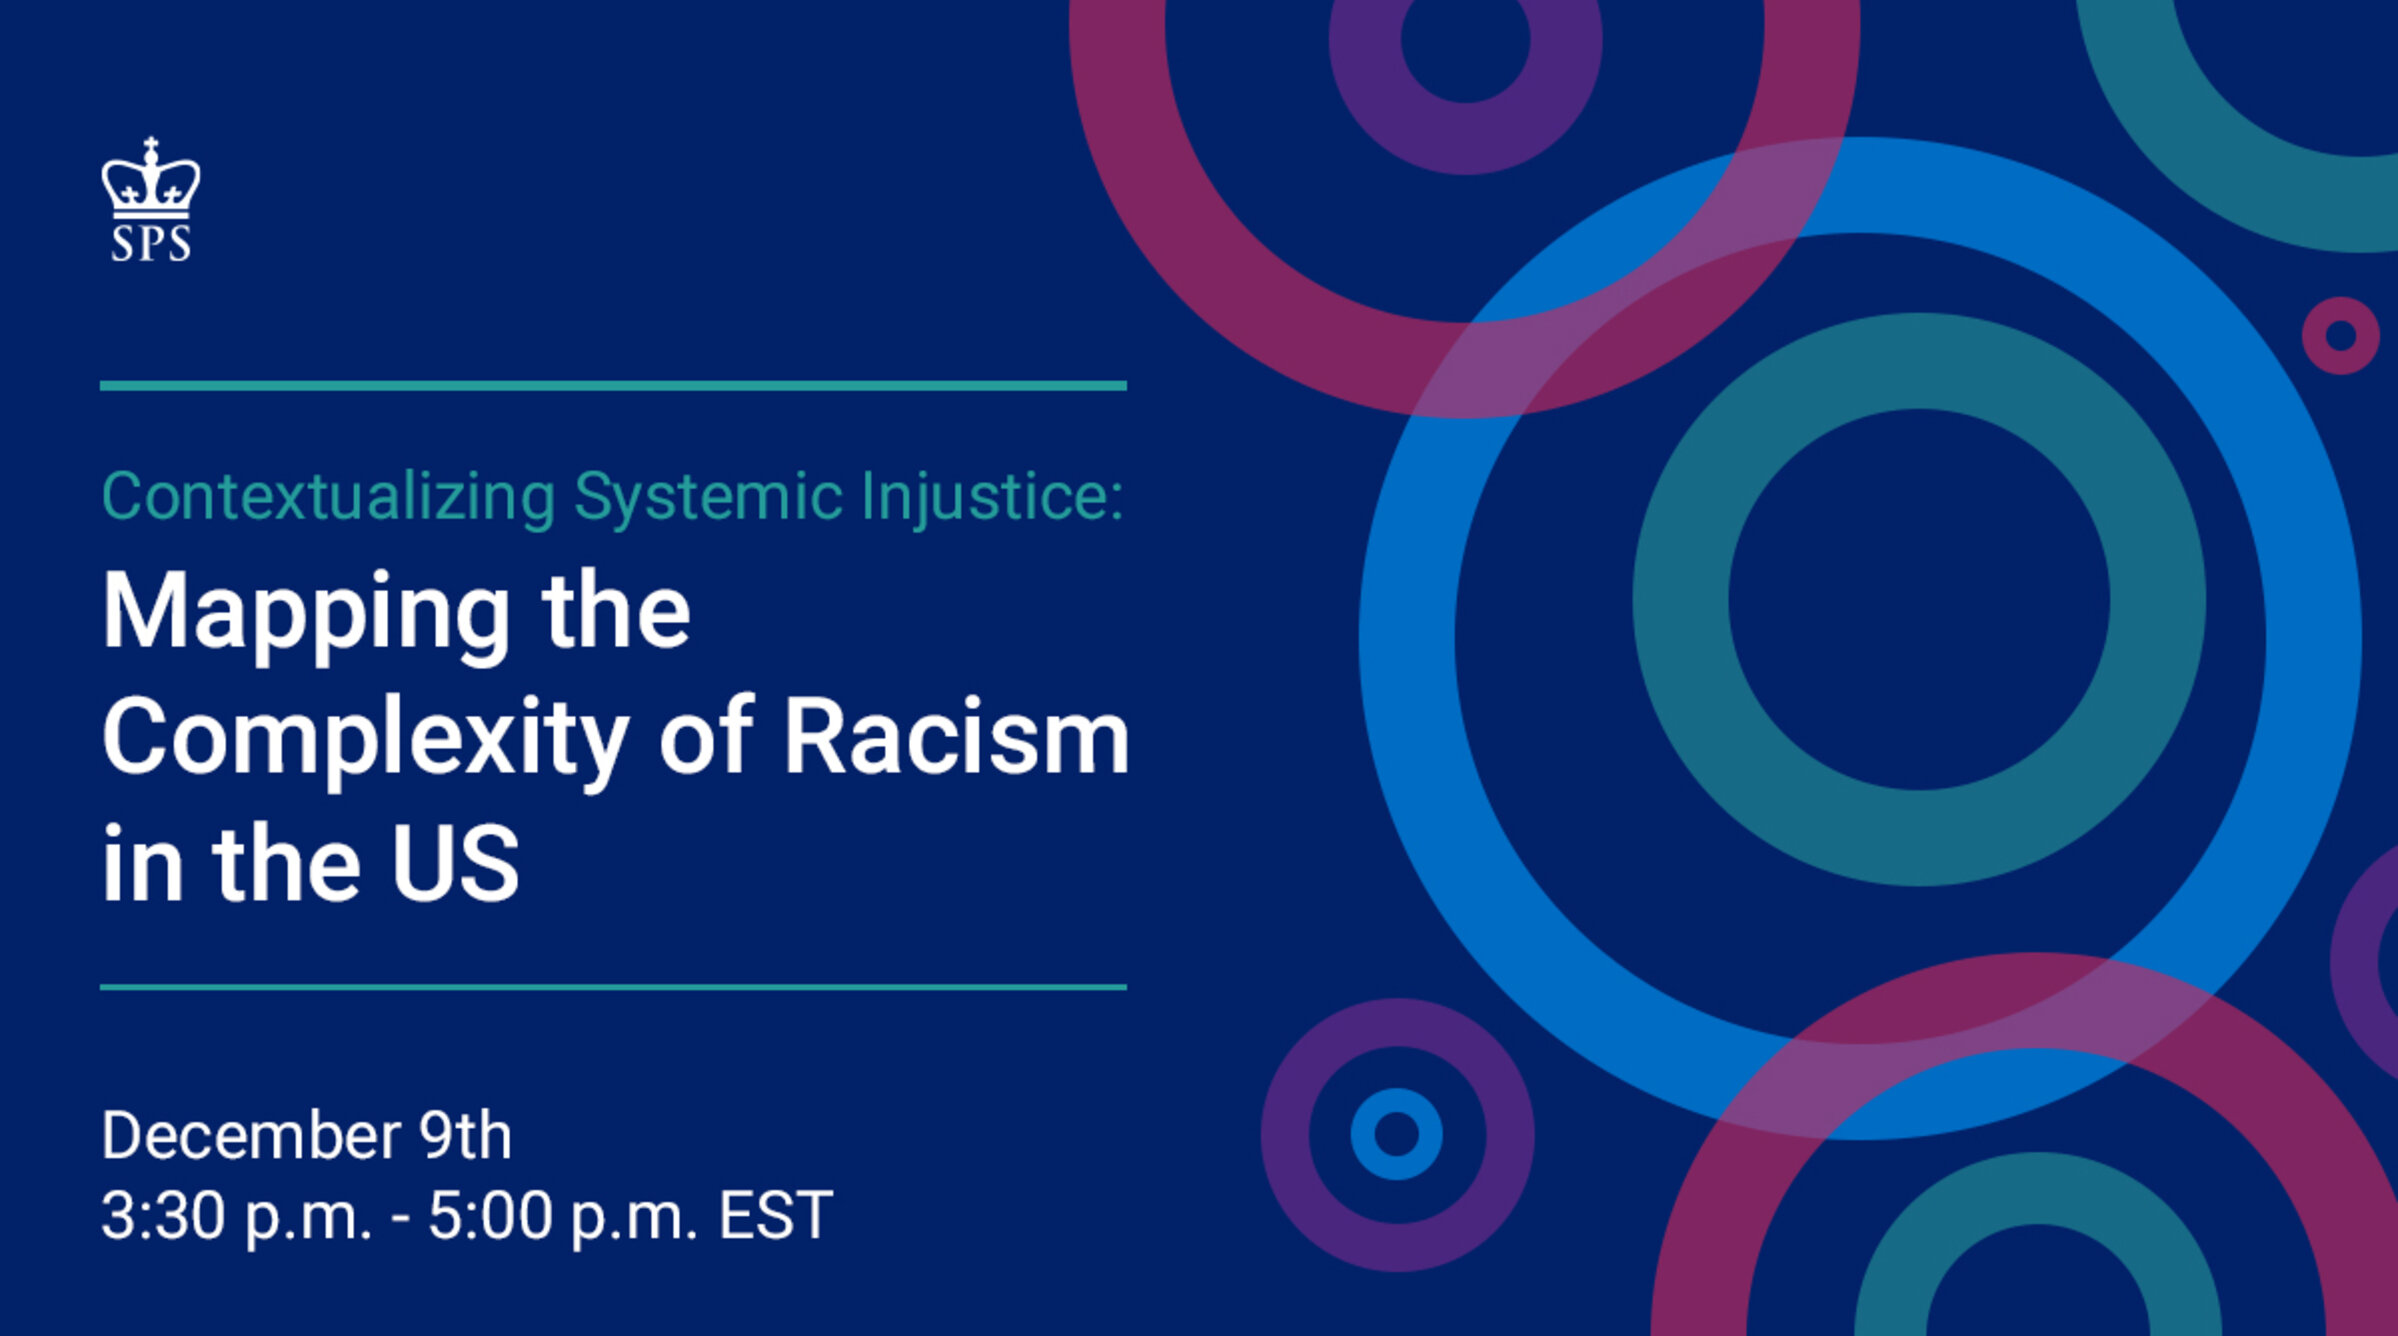 Contextualizing Systemic Injustice: Mapping the Complexity of Racism in the US